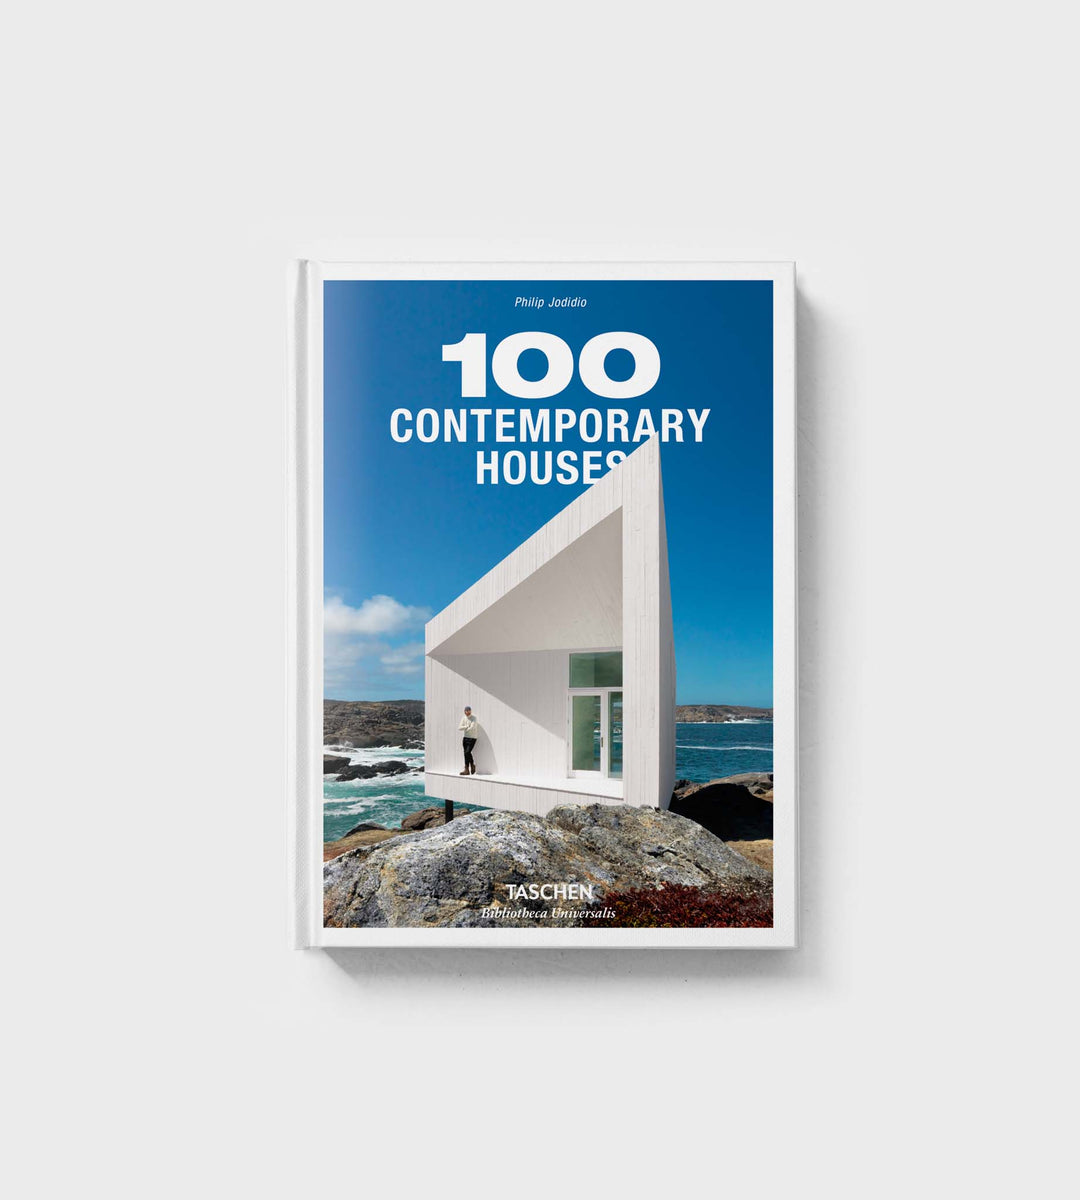 100 Contemporary Houses Bibliotheco Universalis | by Phillip Jodidio